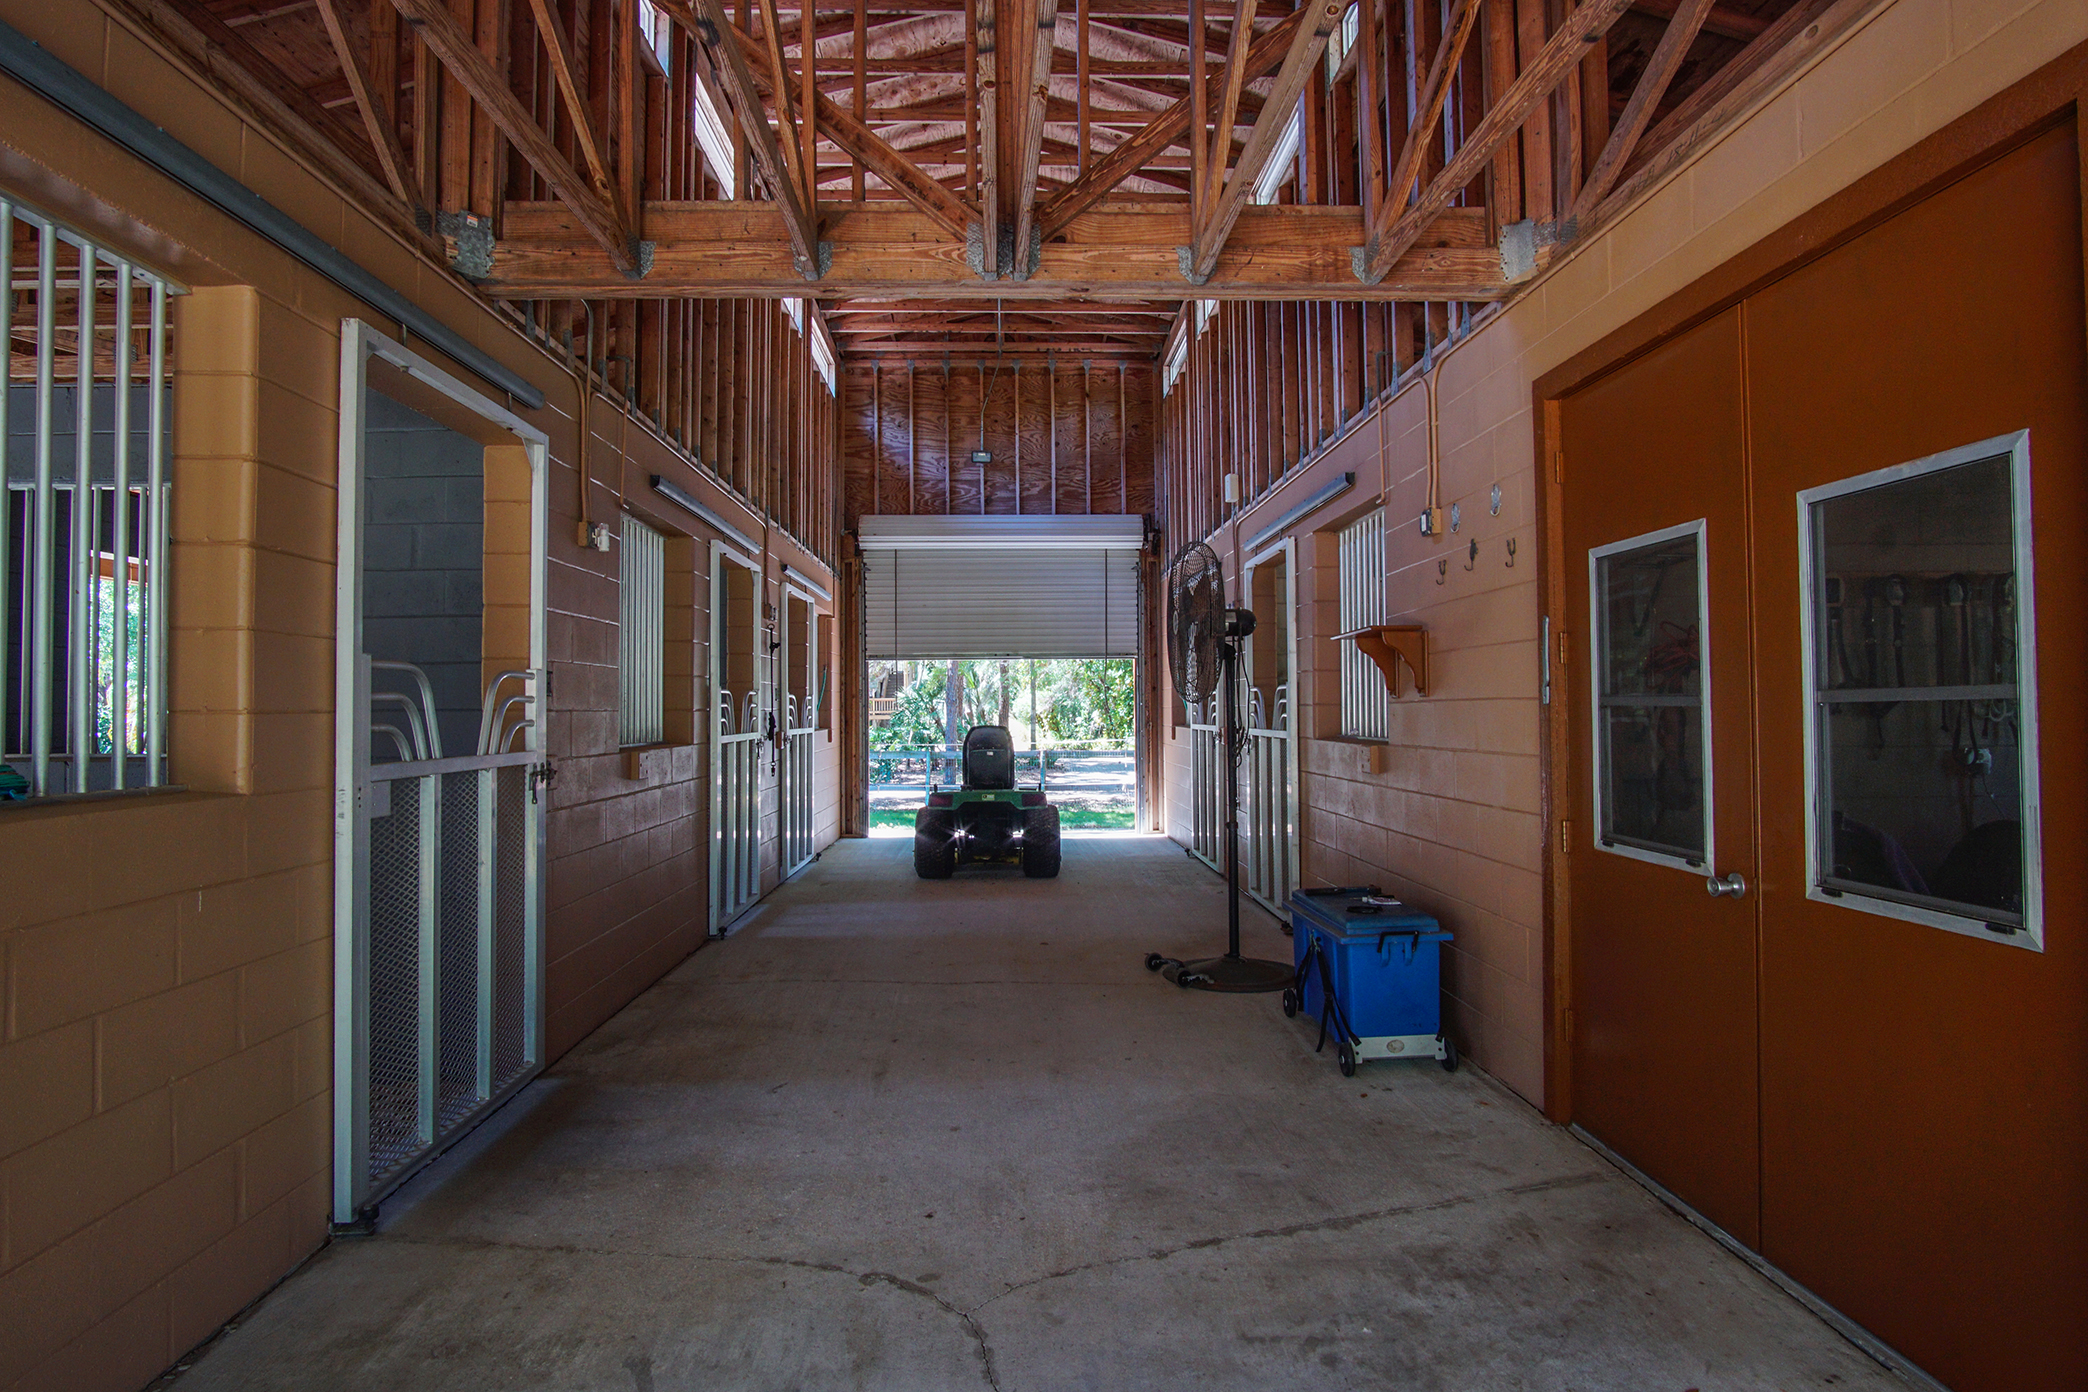 Impeccably Maintained Barn